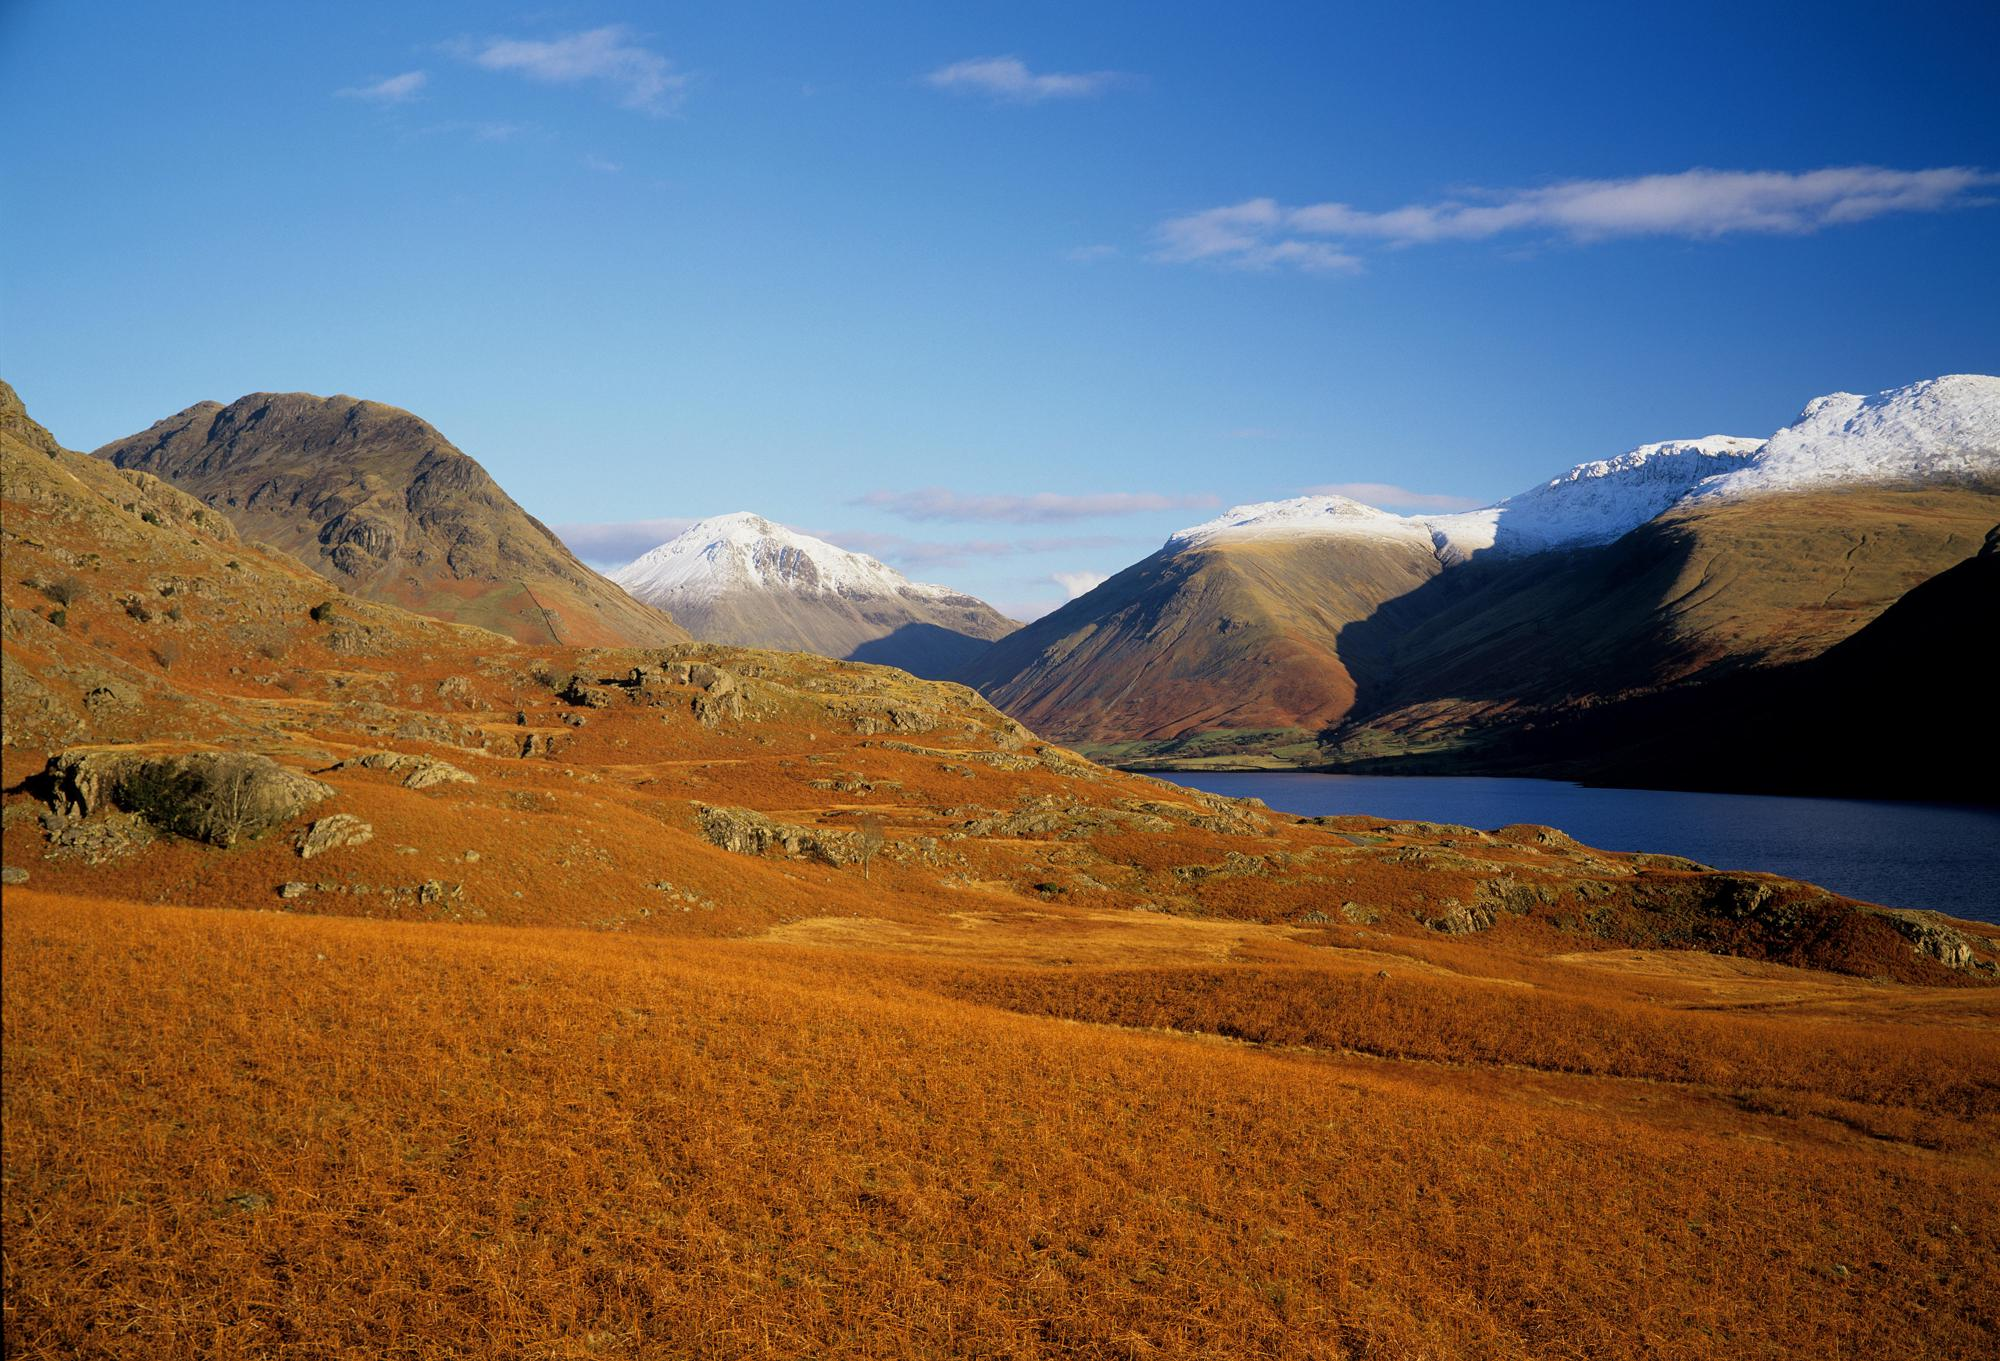 Scafell Pike Camping – Campsites near Scafell Pike, Lake District